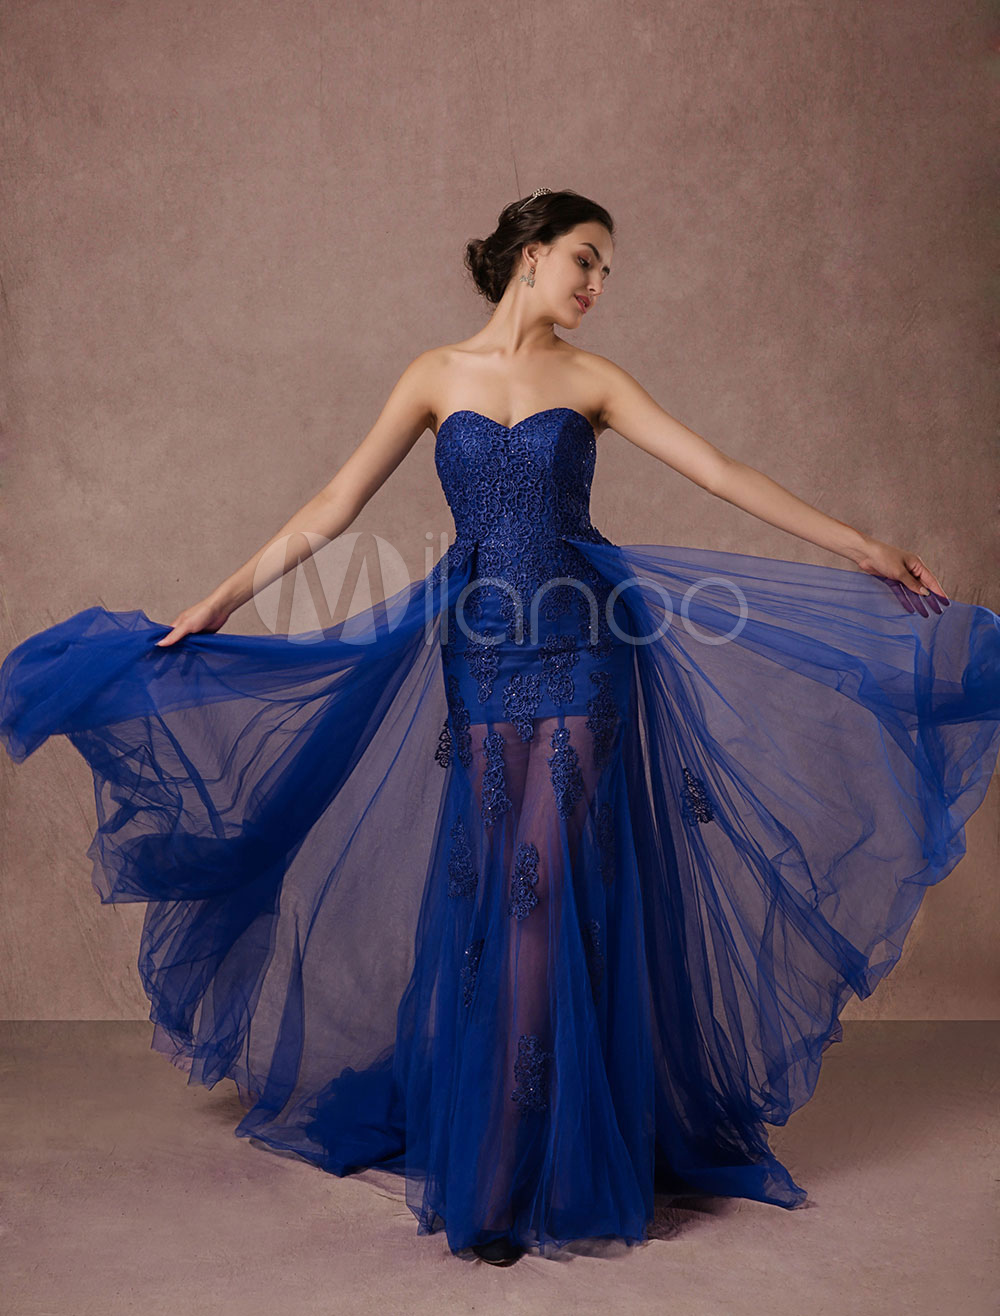 Mermaid Lace Evening Dress Two-way Illusion Detachable Panel Train Strapless Sweetheart Sexy Red Carpet Dress